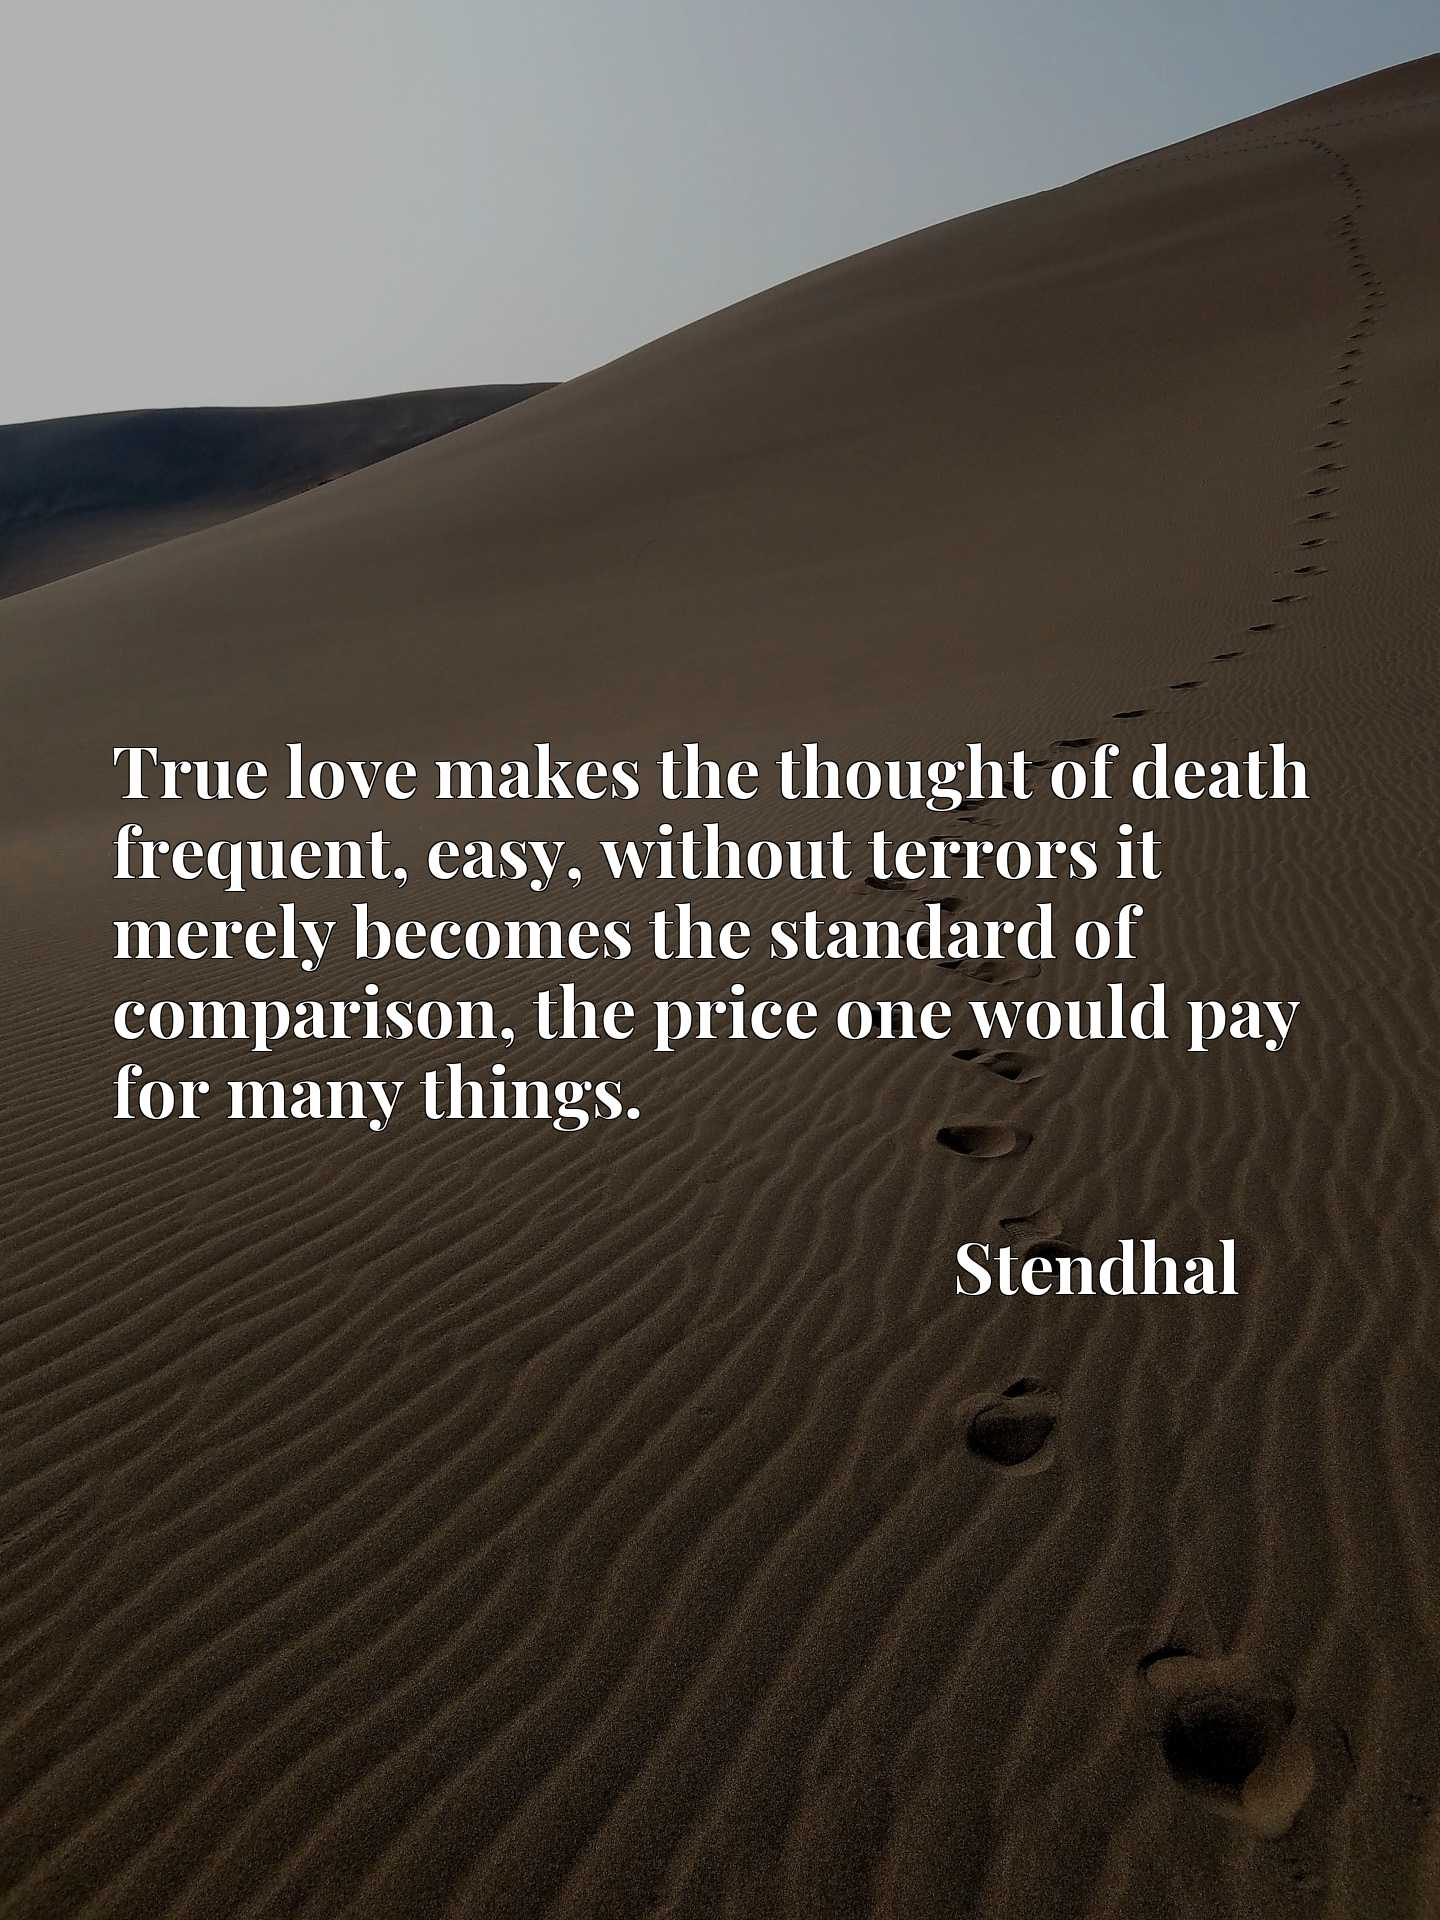 True love makes the thought of death frequent, easy, without terrors it merely becomes the standard of comparison, the price one would pay for many things.